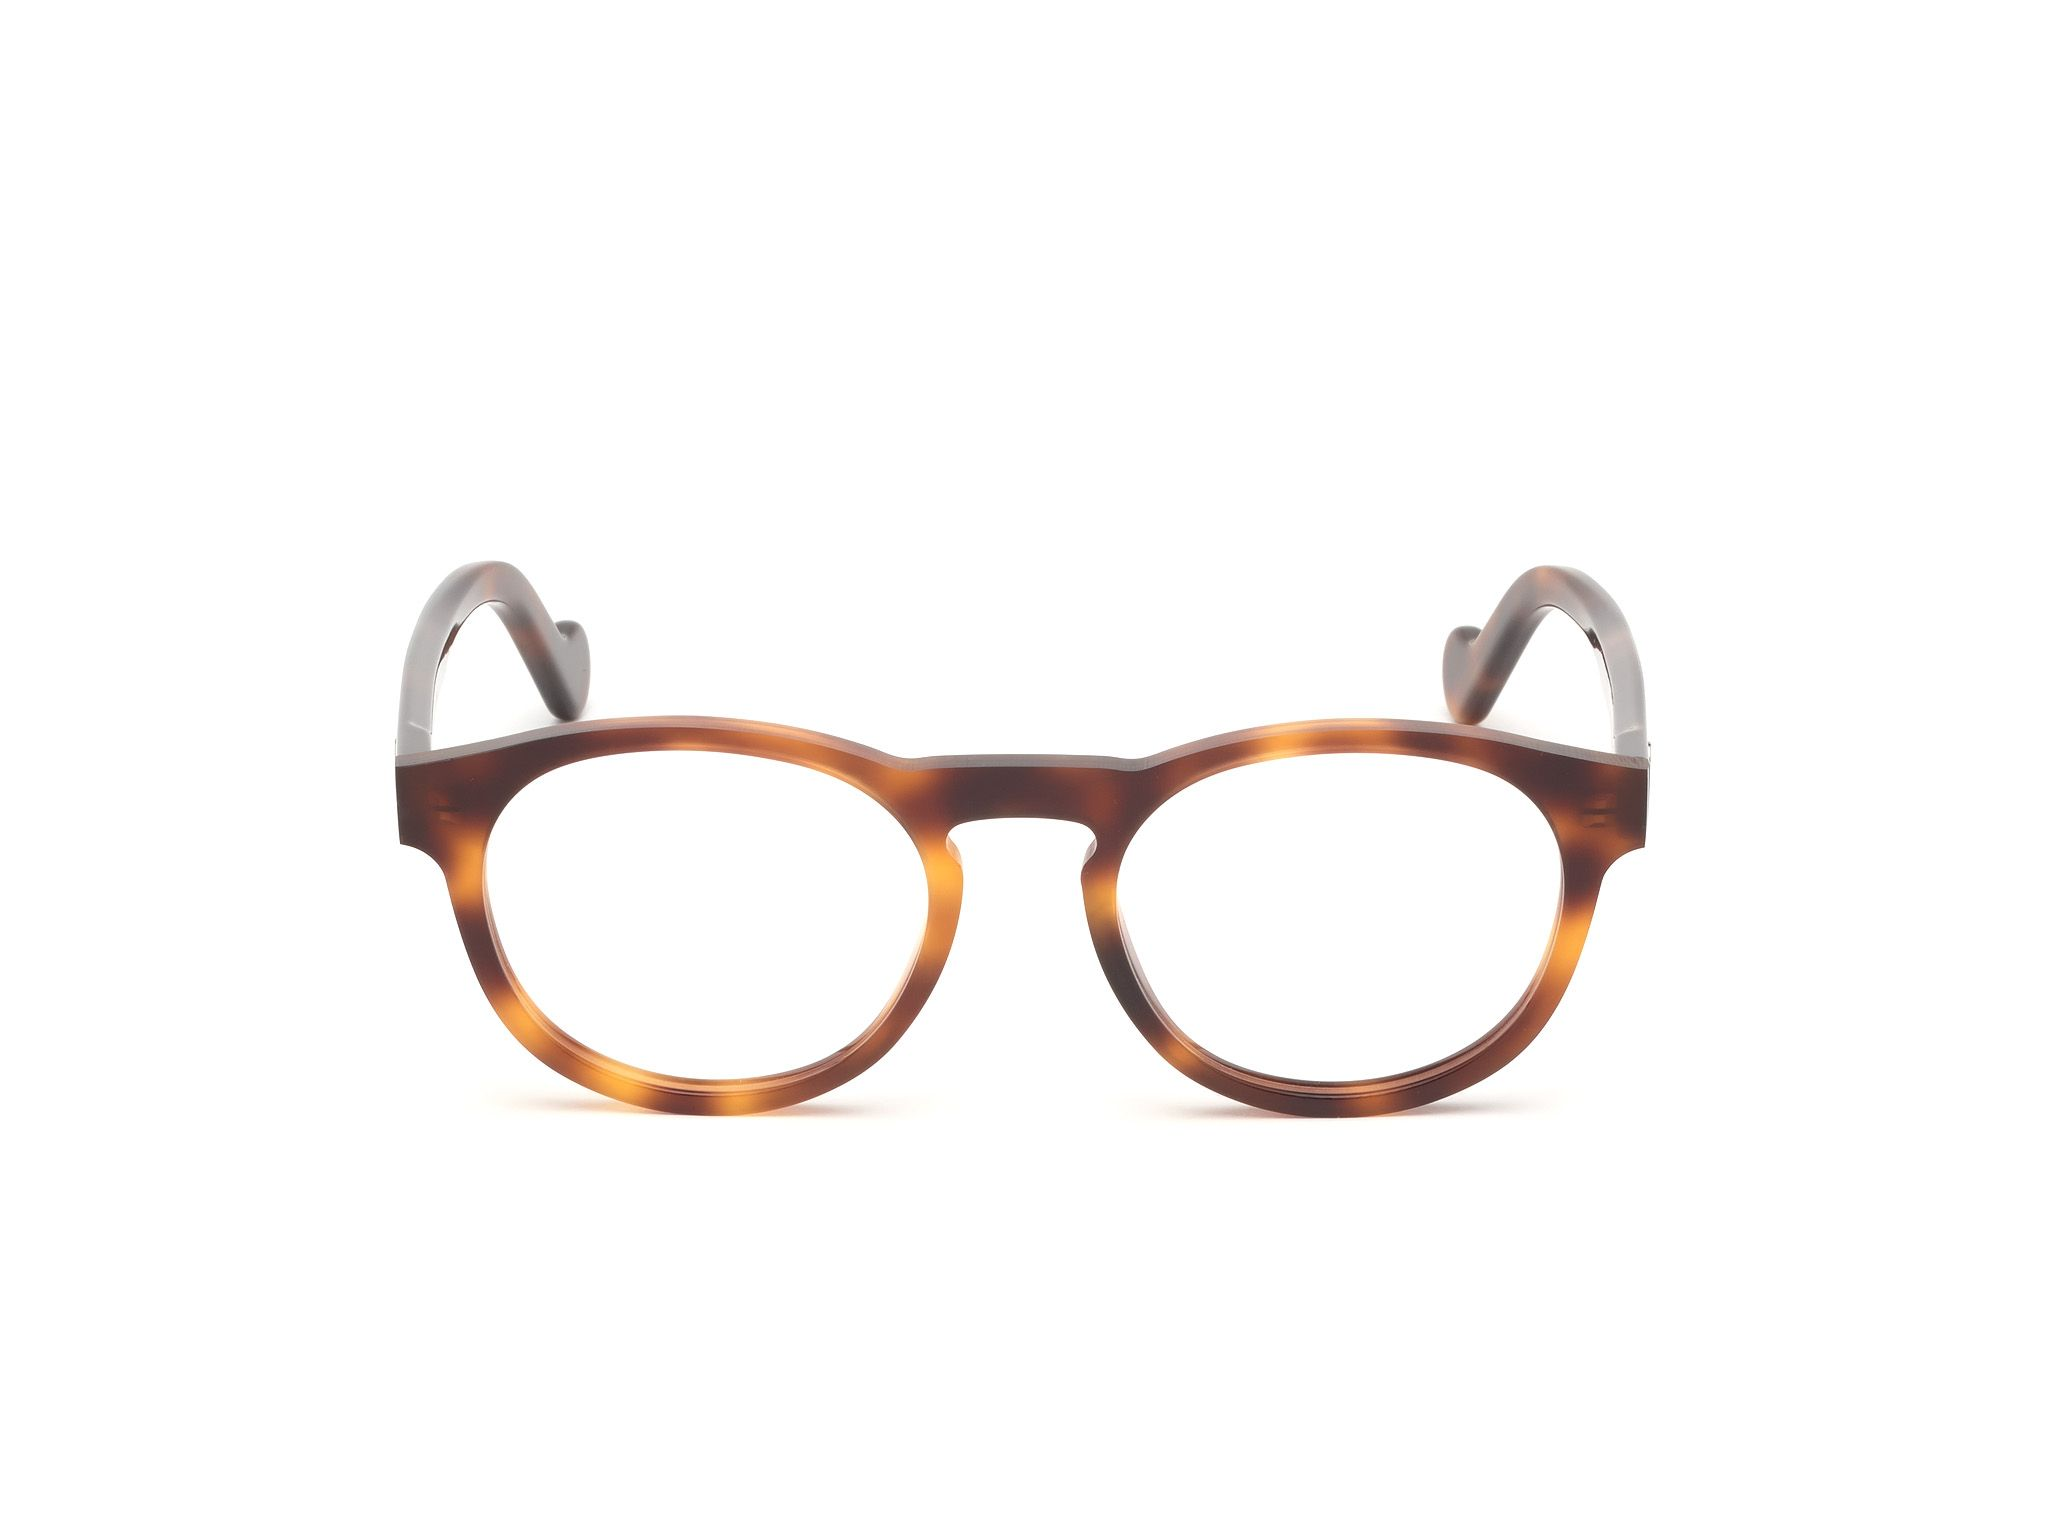 ML5051 showcases a round eyeglass shape with raw edges intentionally left rough